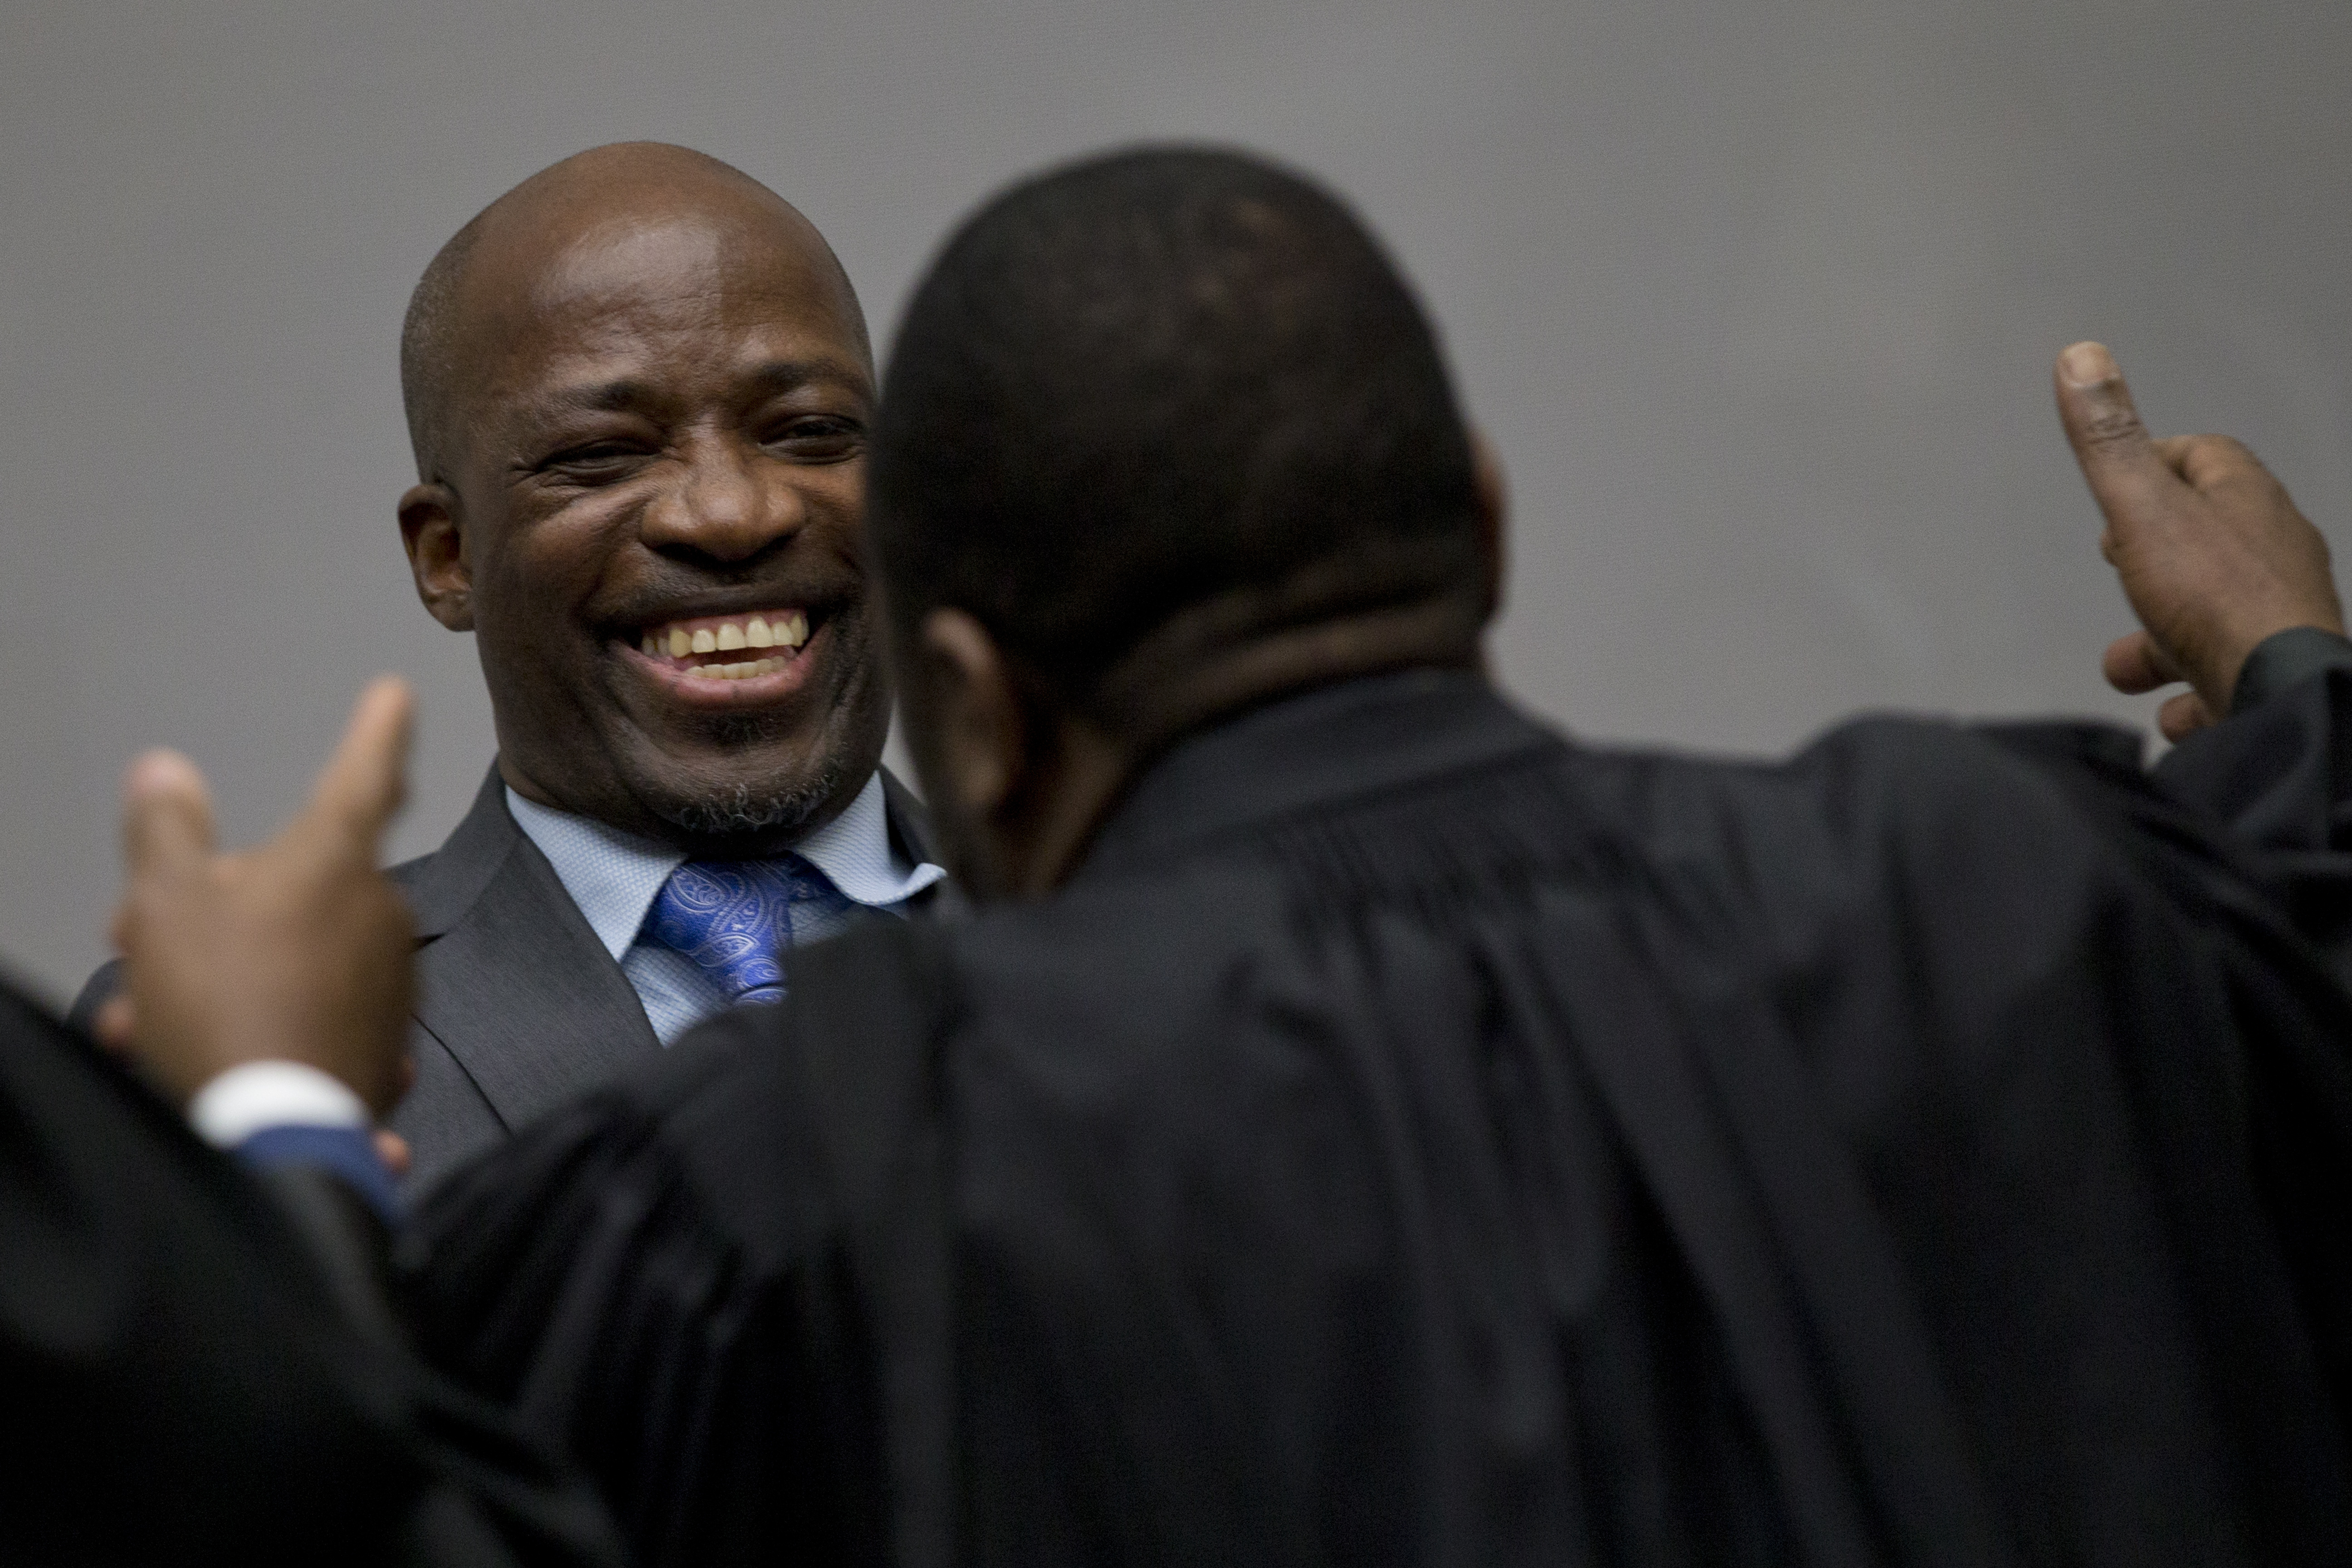 Charles Ble Goude hugs his legal team as he and former Ivory Coast President Laurent Gbagbo enter the courtroom of the International Criminal Court in The Hague, Netherlands, Tuesday, Jan. 15, 2019, where judges were expected to issue rulings on requests by Gbagbo and ex-government minister Goude to have their prosecutions thrown out for lack of evidence. (AP Photo/Peter Dejong, Pool)